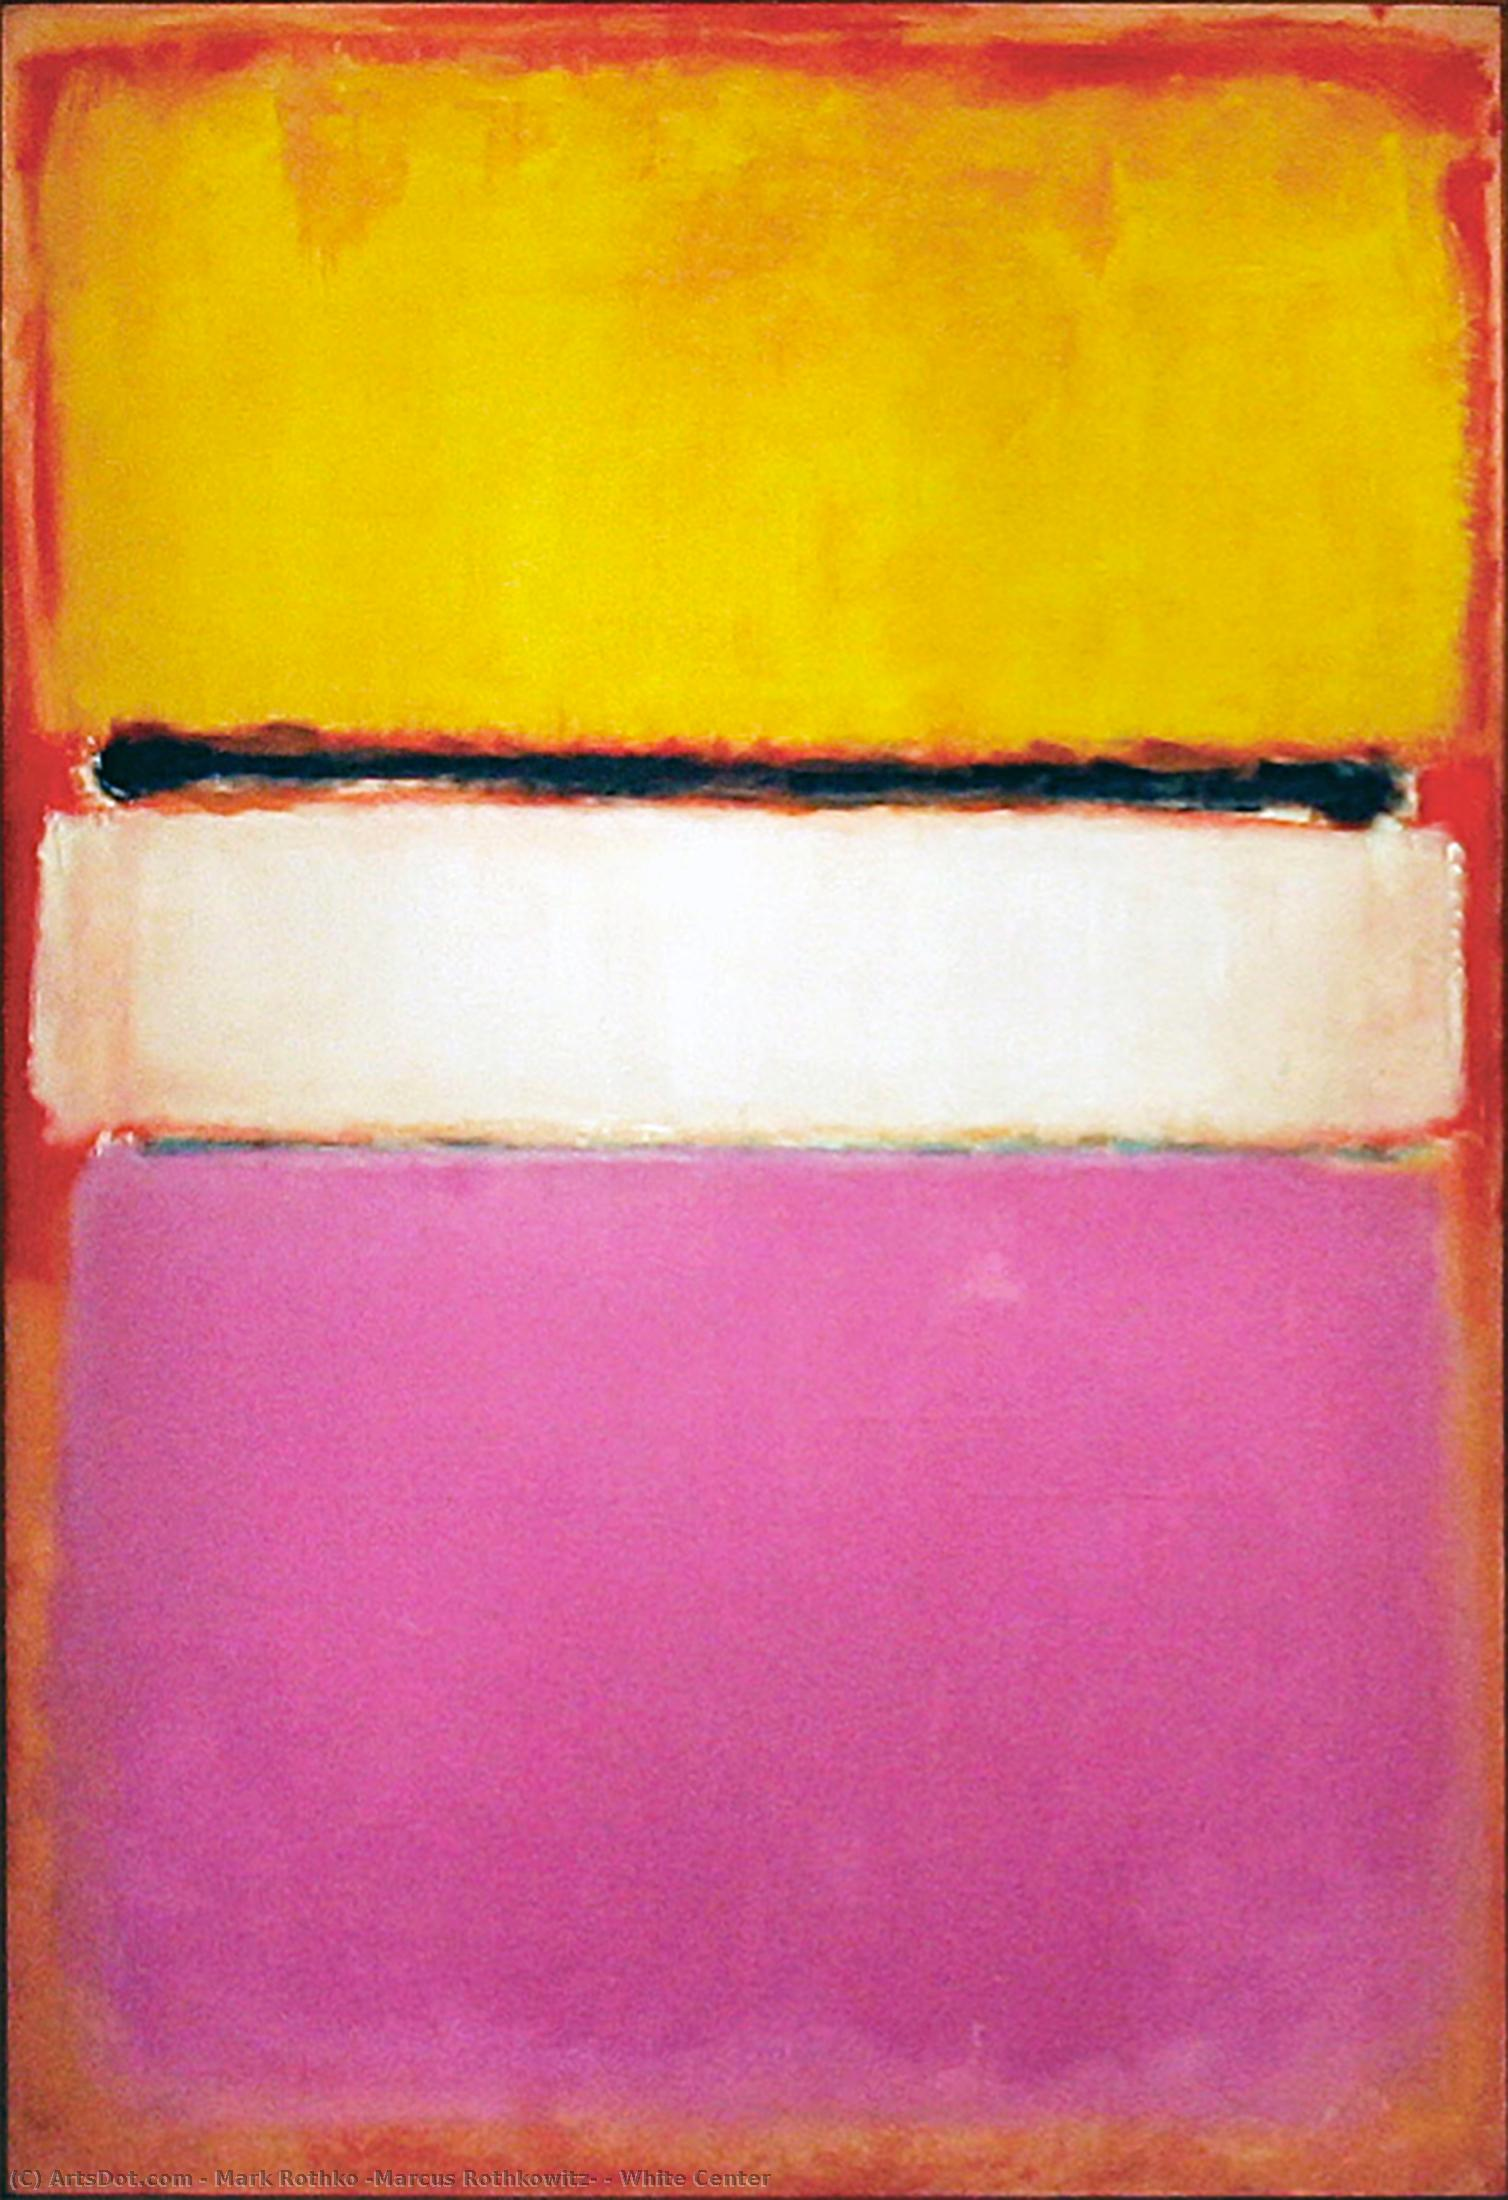 White Center, 1950 by Mark Rothko (Marcus Rothkowitz) (1903-1970, Latvia) |  | ArtsDot.com